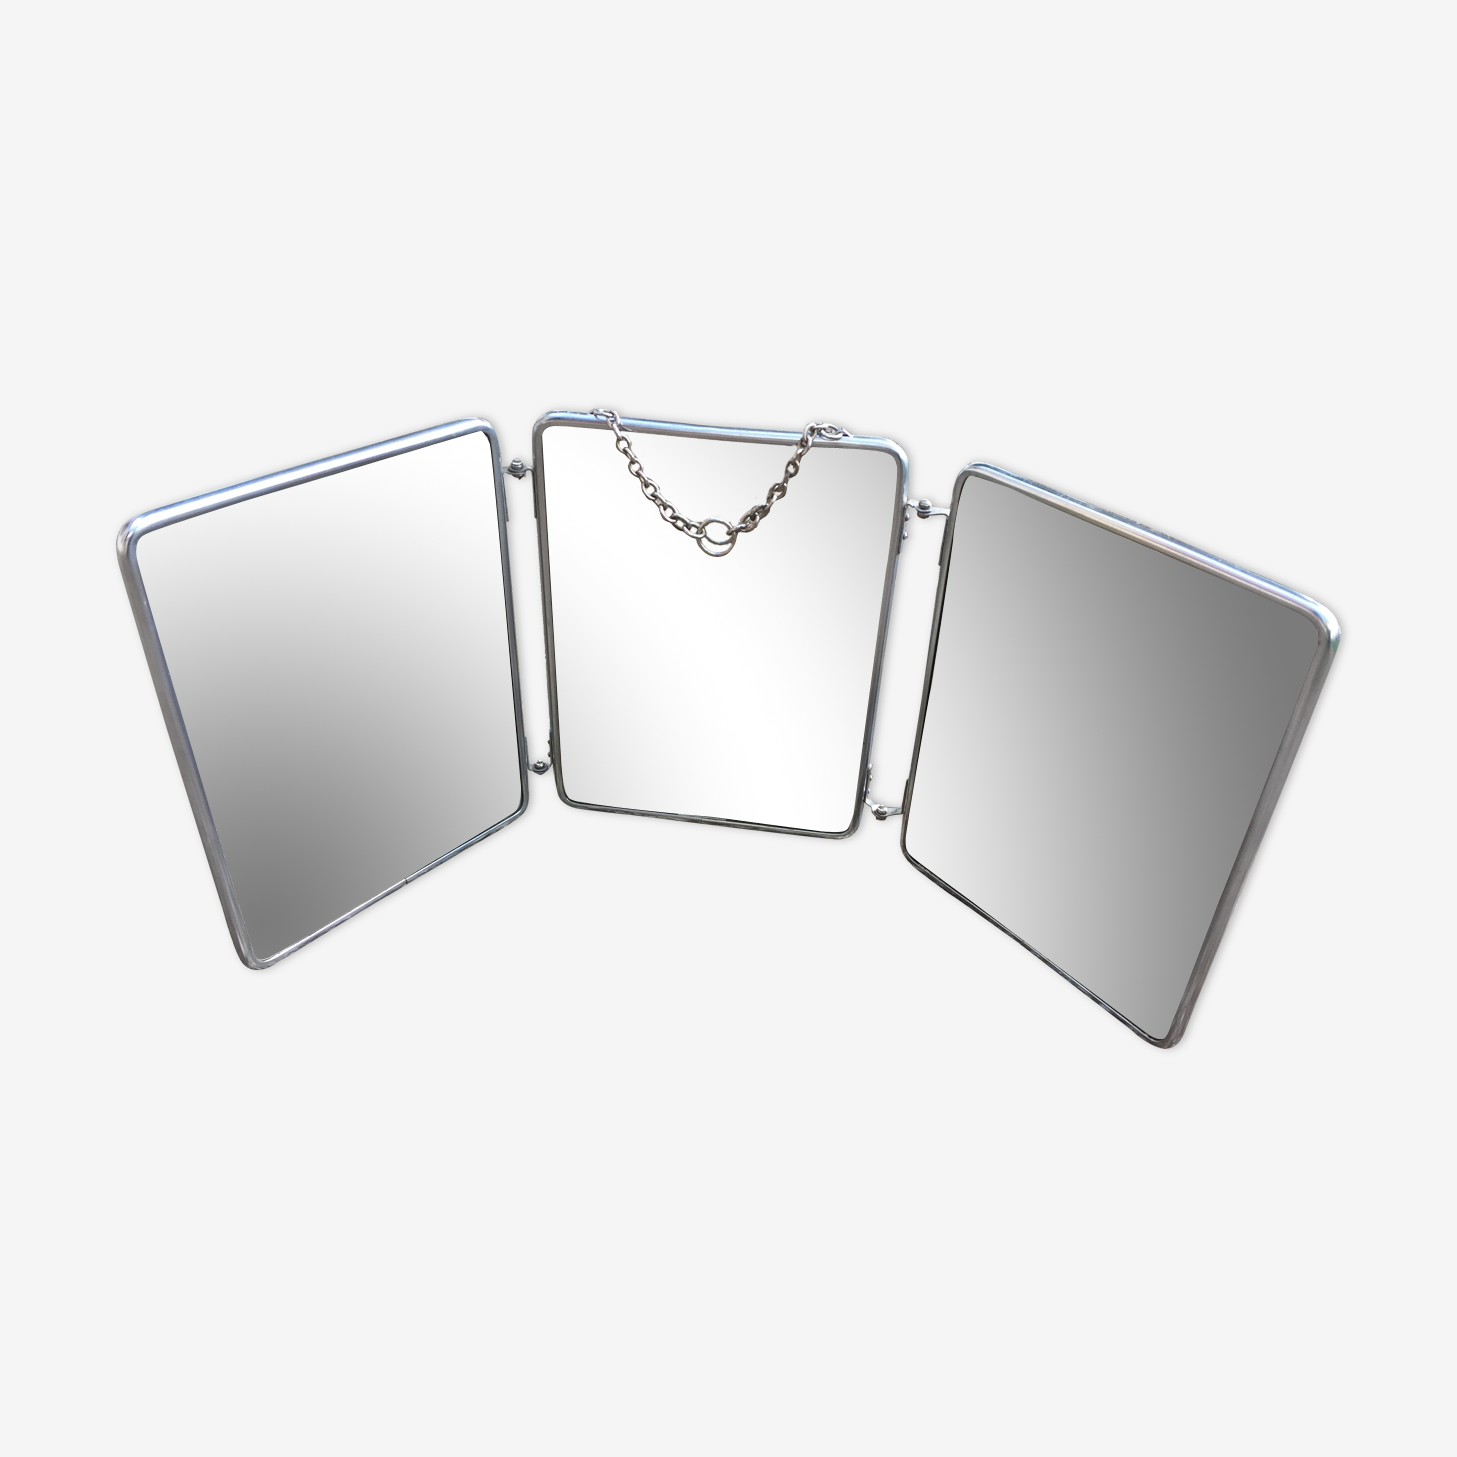 Former Barber triptych mirror with chain 60 years 18x24cm